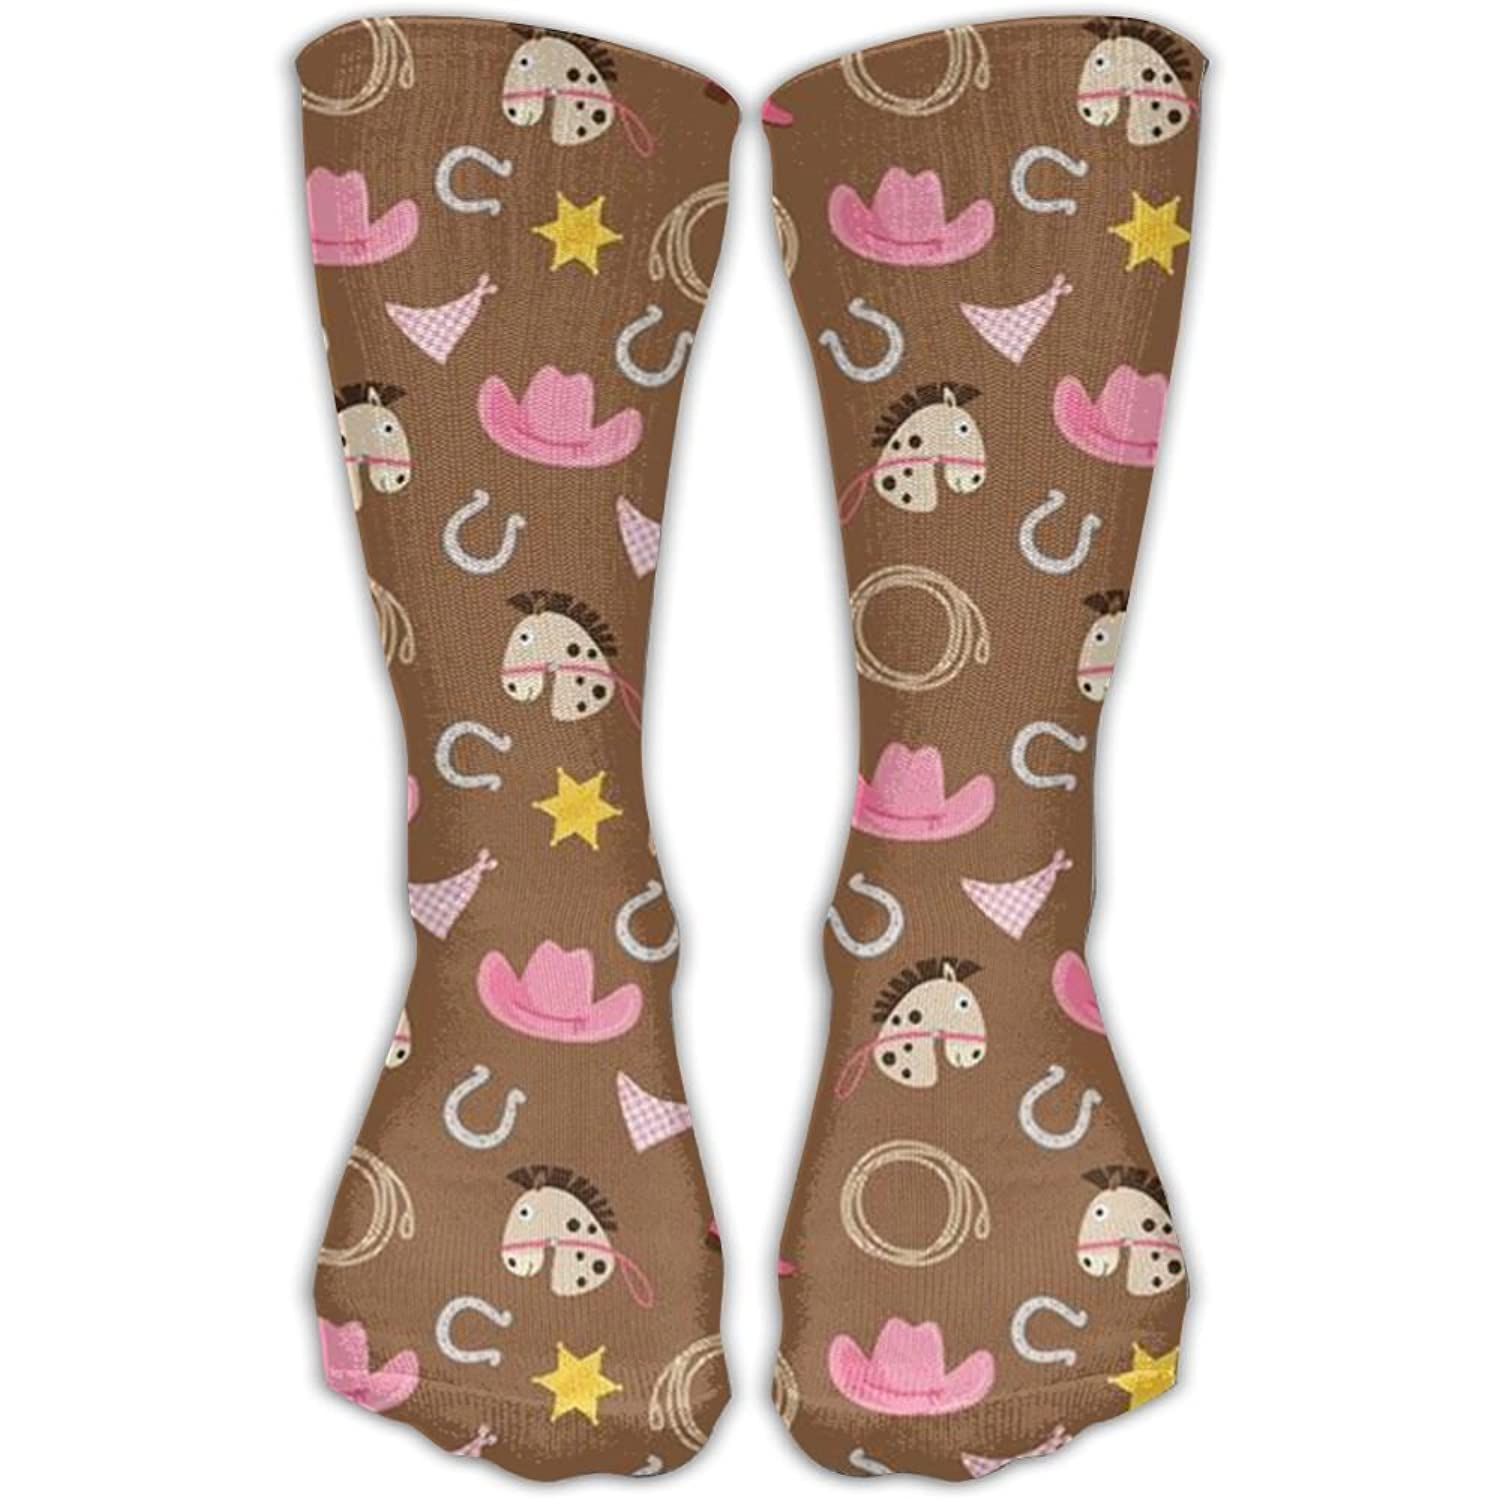 Fun Horseshoe Horse Animal Girls Dress Socks Womens Crew Socks